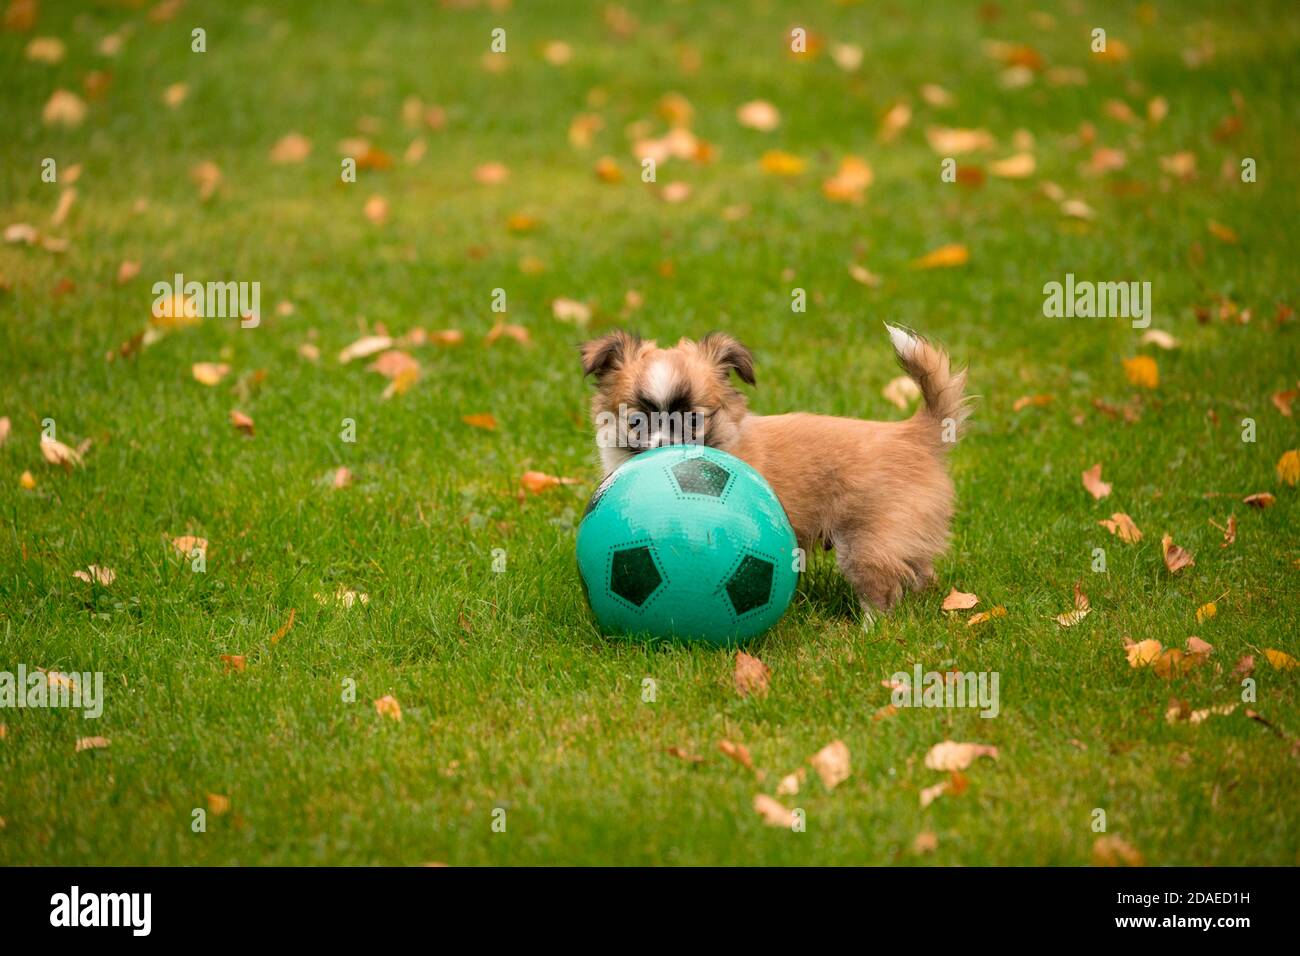 Chihuahua puppy, longhaired, play, football, outdoor Stock Photo